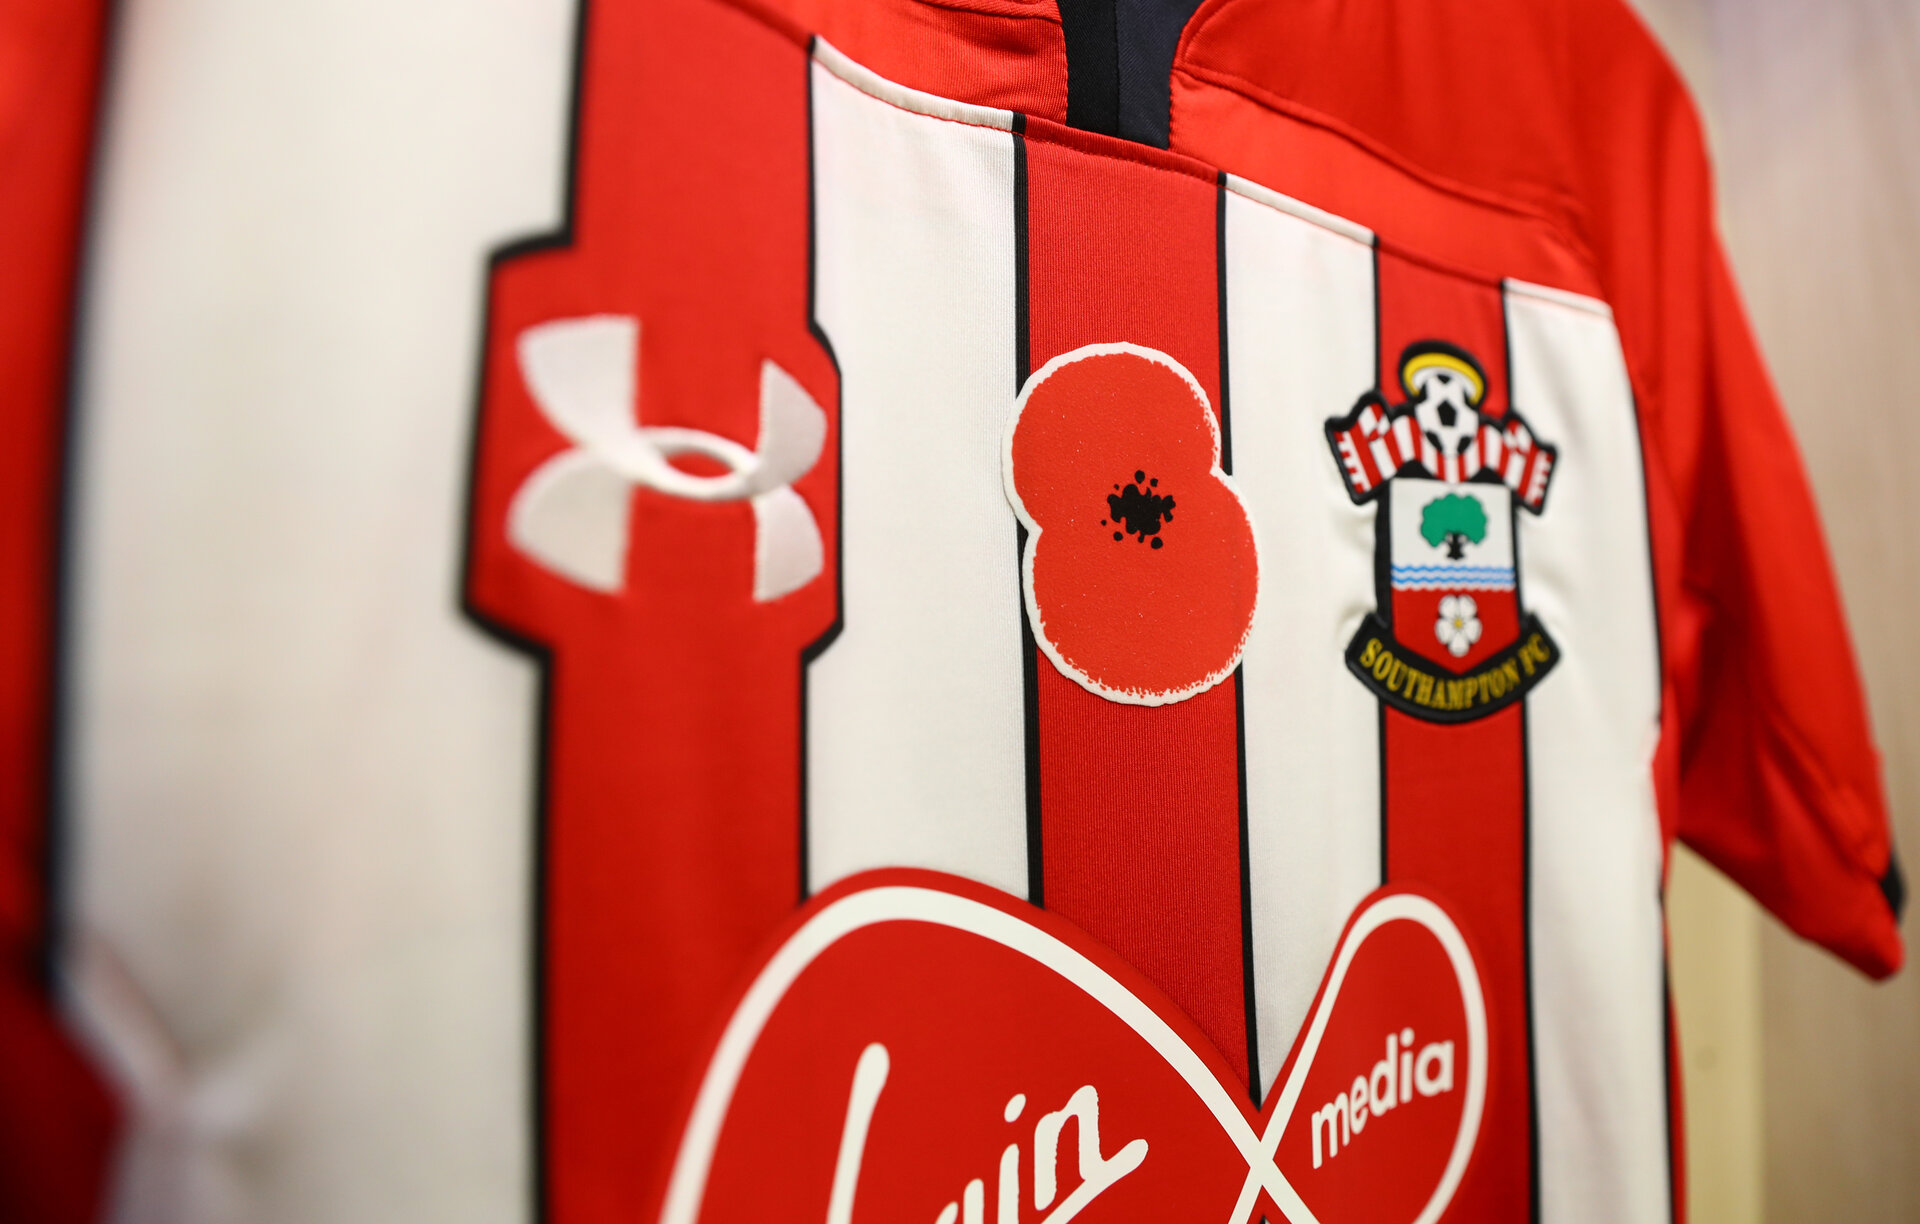 SOUTHAMPTON, ENGLAND - NOVEMBER 10: Southampton FC shirts geaturing a remembrance poppy, inside the dressing room of Southampton ahead of the Premier League match between Southampton FC and Watford FC at St Mary's Stadium on November 10, 2018 in Southampton, United Kingdom. (Photo by Matt Watson/Southampton FC via Getty Images)